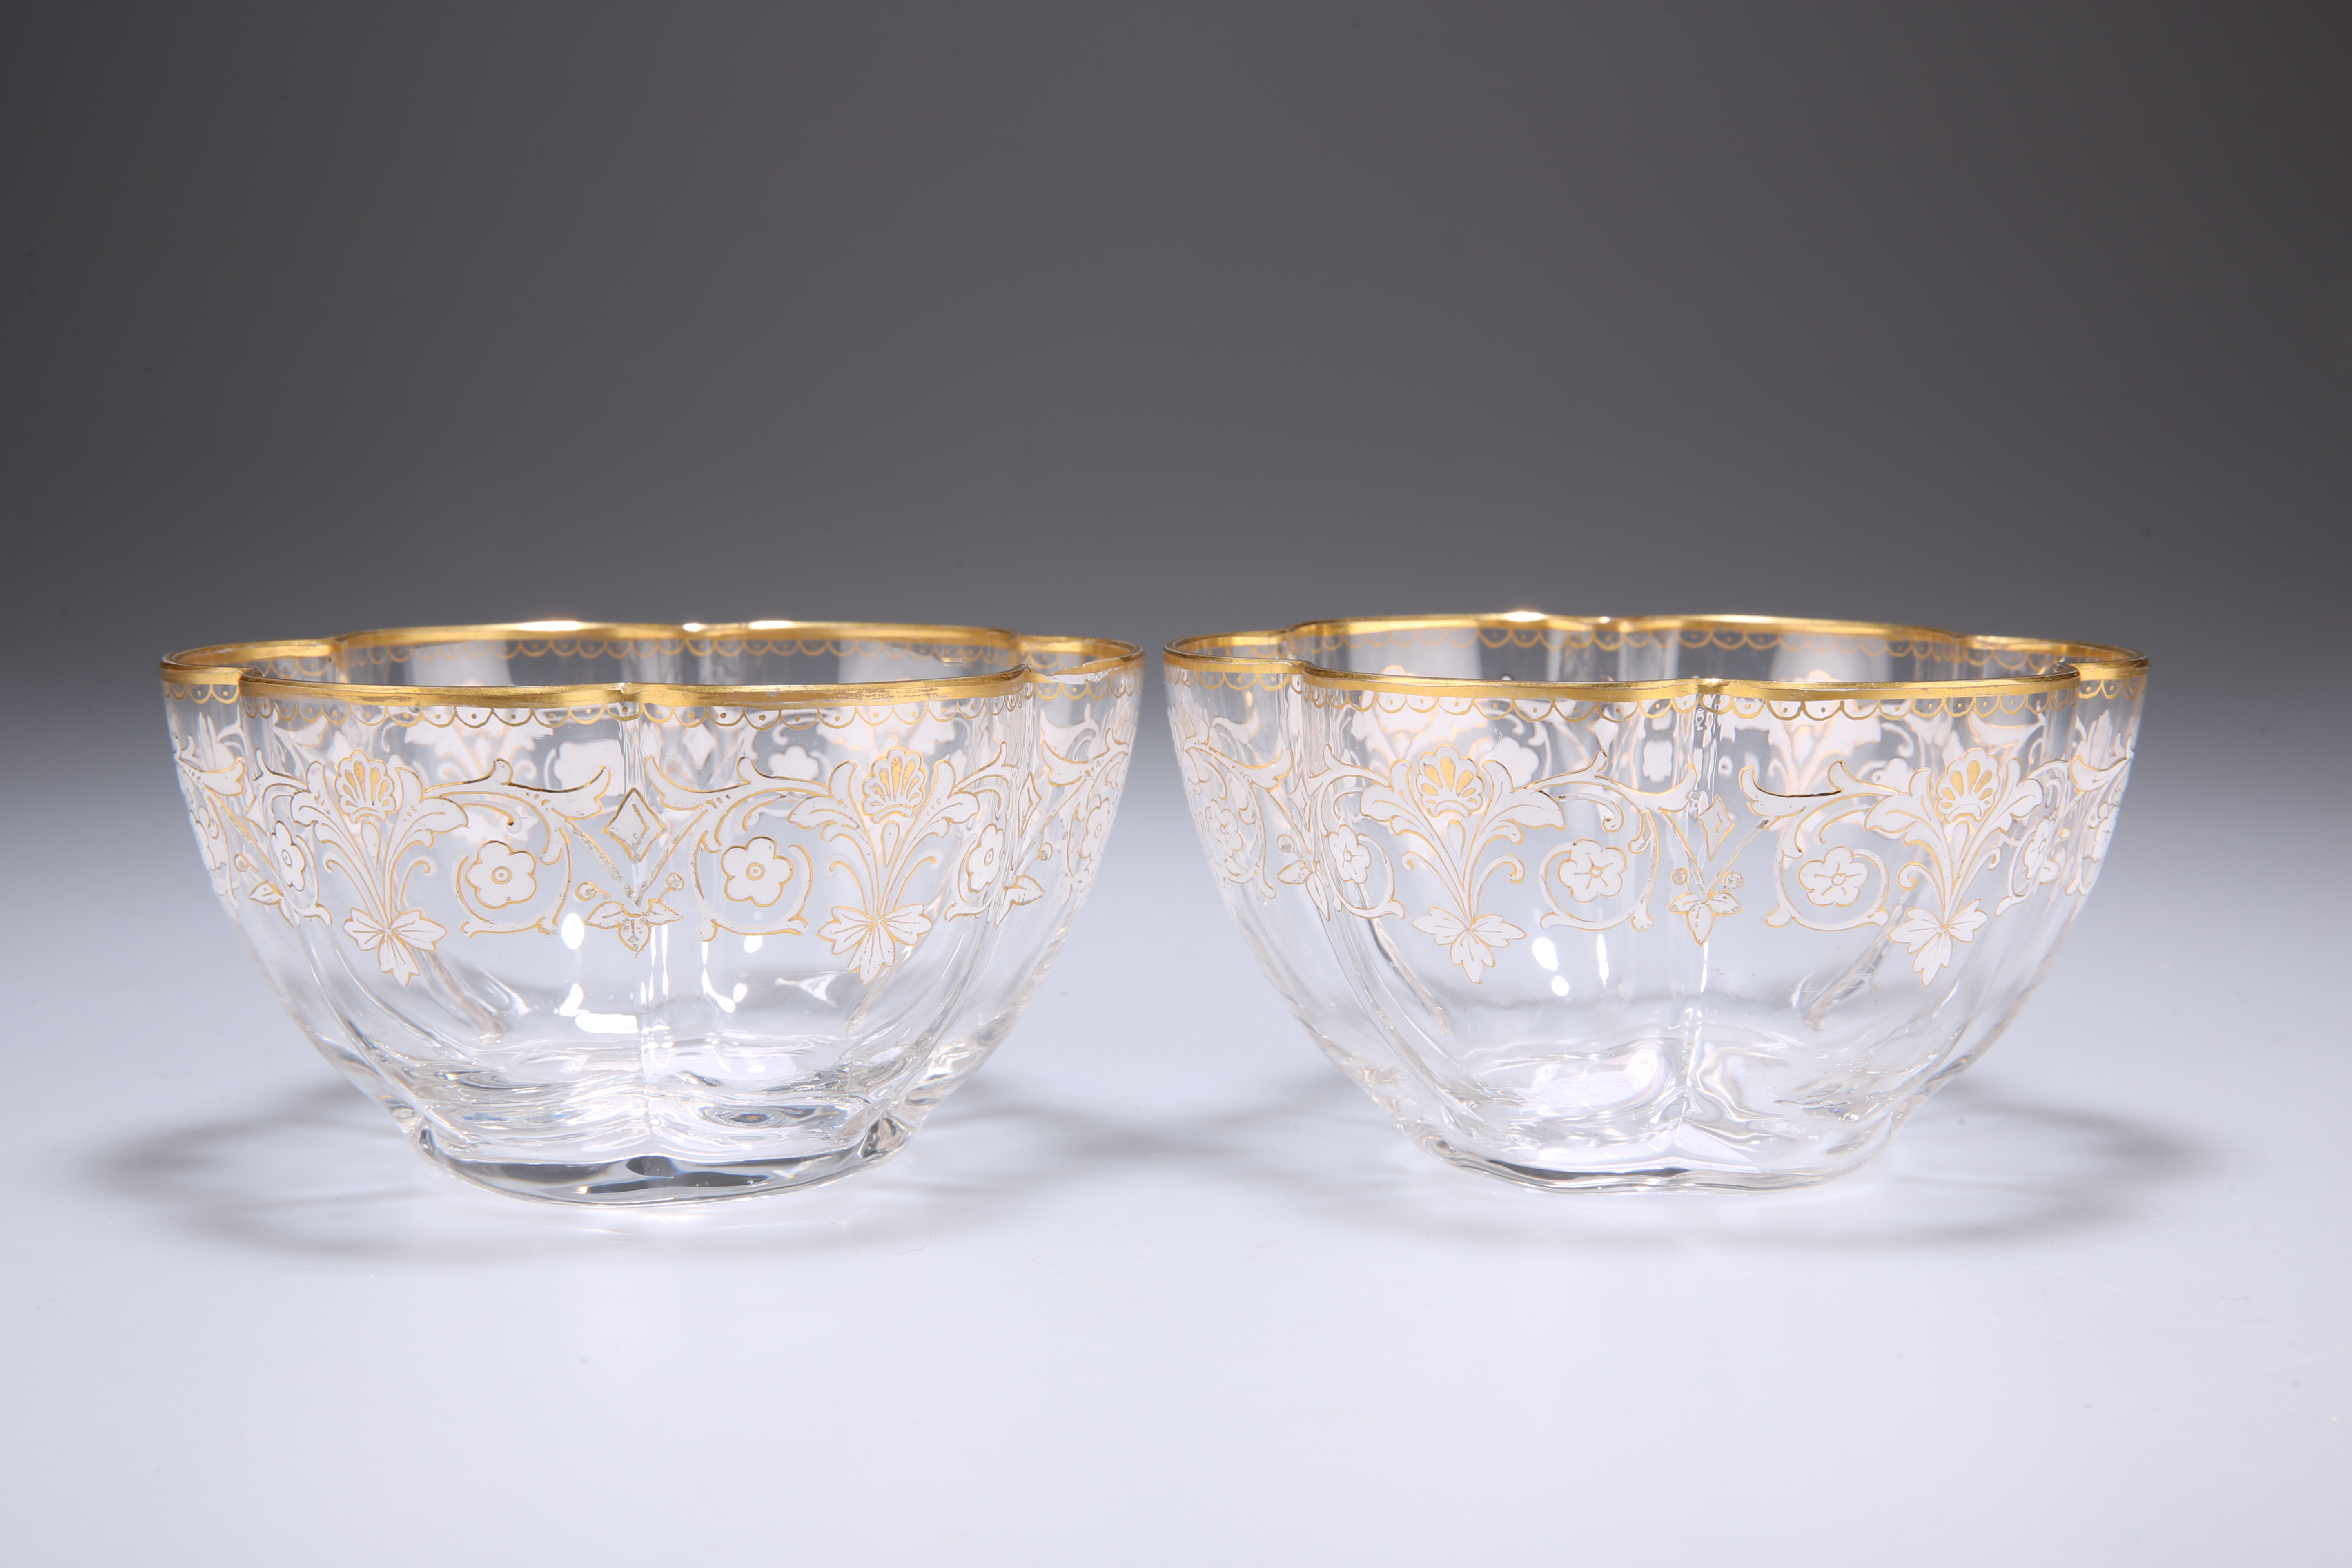 A PAIR OF ENAMELLED AND GILDED LOBED BOWLS - Image 2 of 2